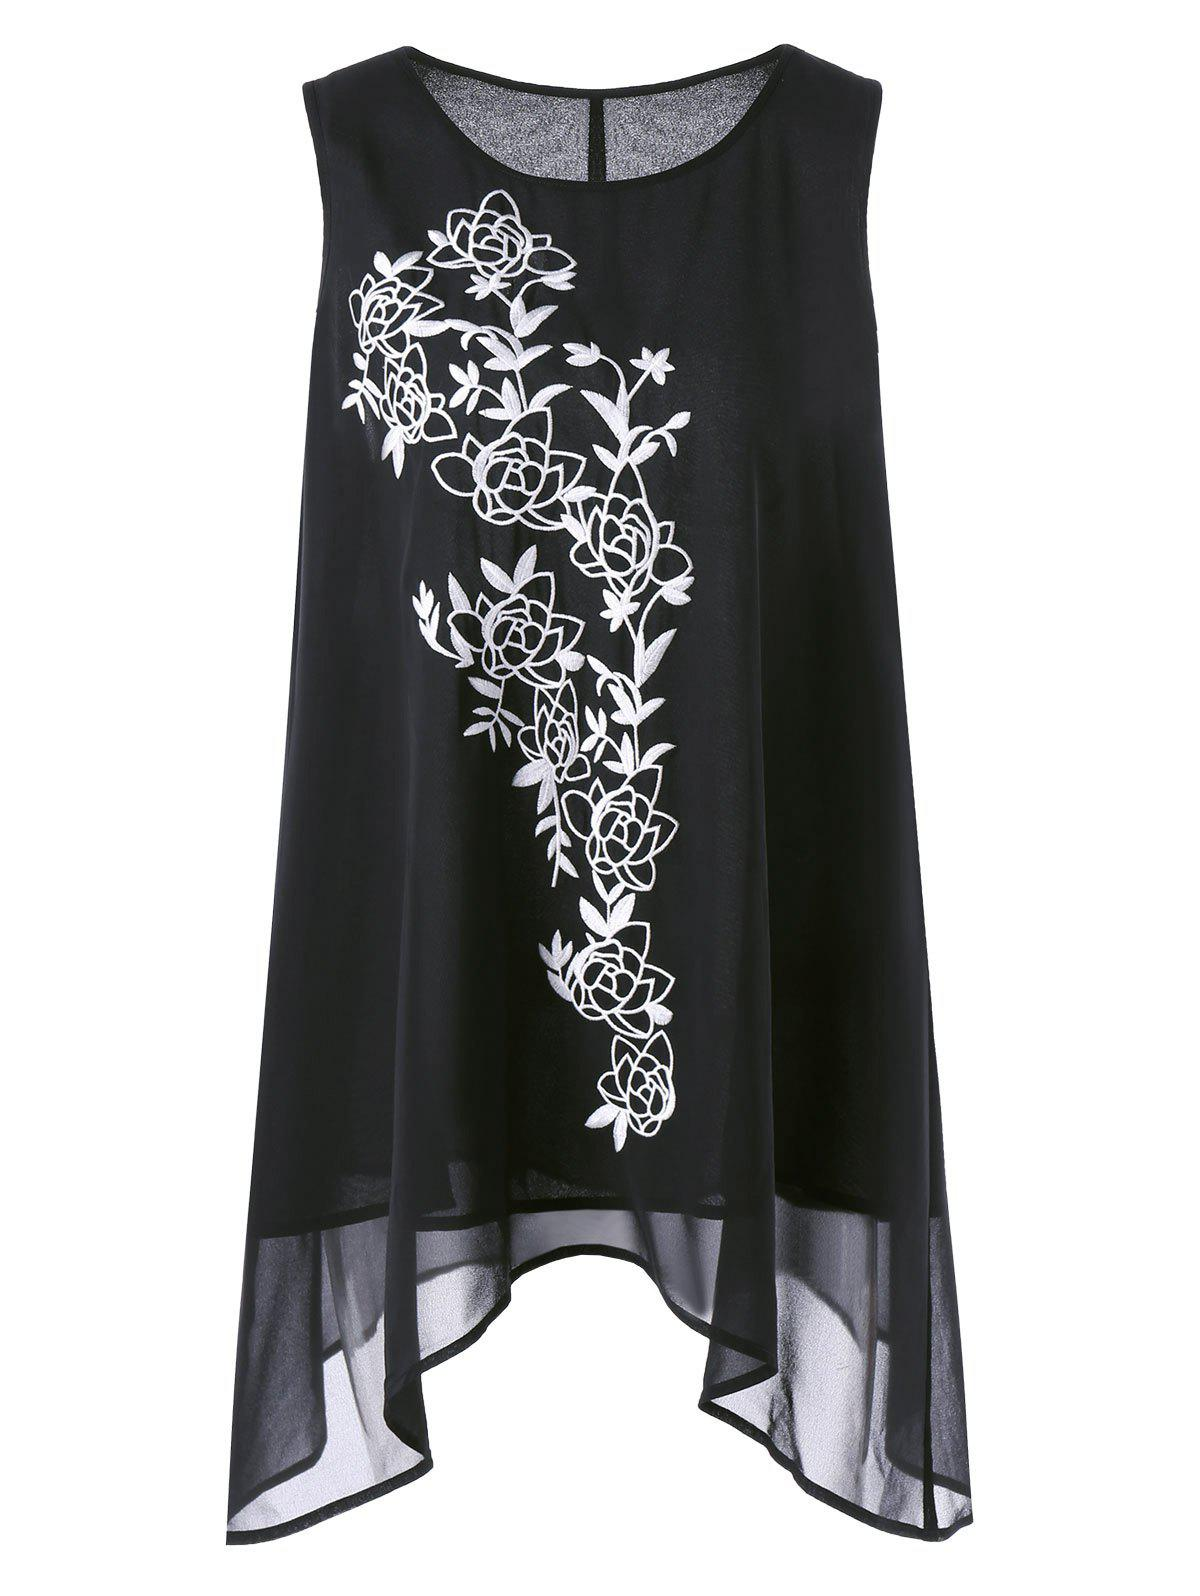 Asymmetric Plus Size Floral Embroidered TopWOMEN<br><br>Size: 2XL; Color: BLACK; Material: Cotton,Polyester; Shirt Length: Long; Sleeve Length: Sleeveless; Collar: Scoop Neck; Style: Casual; Season: Summer; Embellishment: Embroidery; Pattern Type: Floral; Weight: 0.2500kg; Package Contents: 1 x Top;